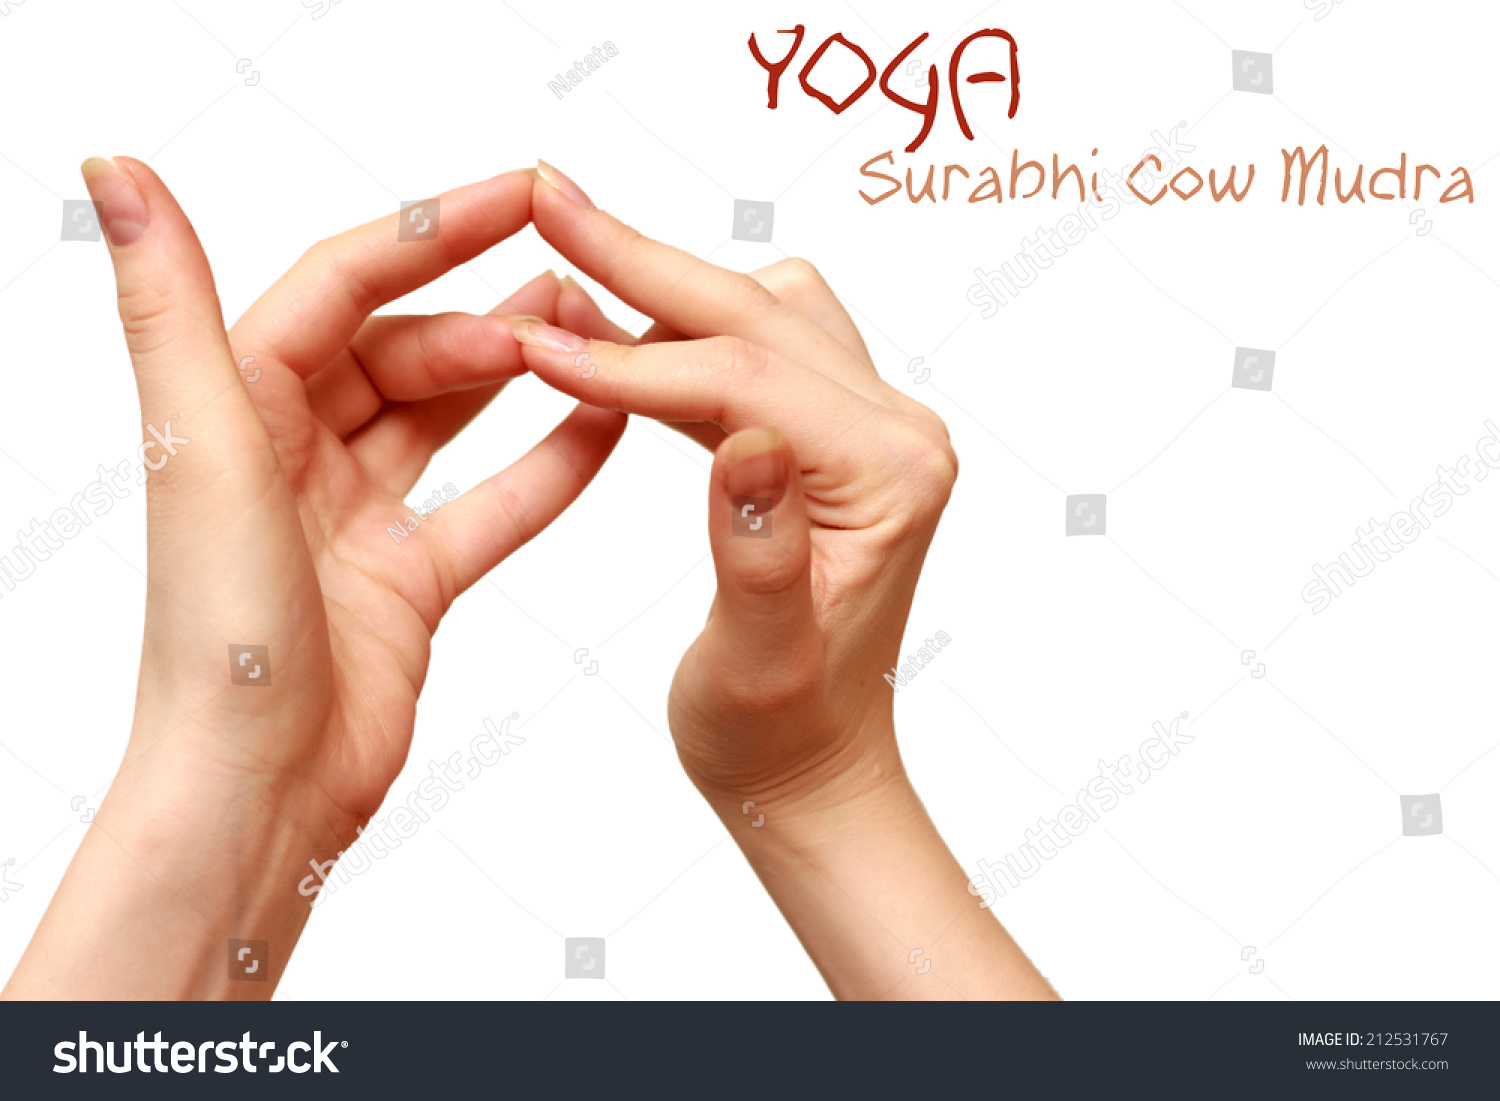 Surabhi Cow Mudra Yoga Gesture Women Hands Isolated. Rigler Sign Signs. Dermatoglyphics Signs. Diseased Kidney Signs Of Stroke. Teeth Signs Of Stroke. Word Cloud Signs. Tea Coffee Signs. Makaton Sources Signs. Very Hungry Caterpillar Signs